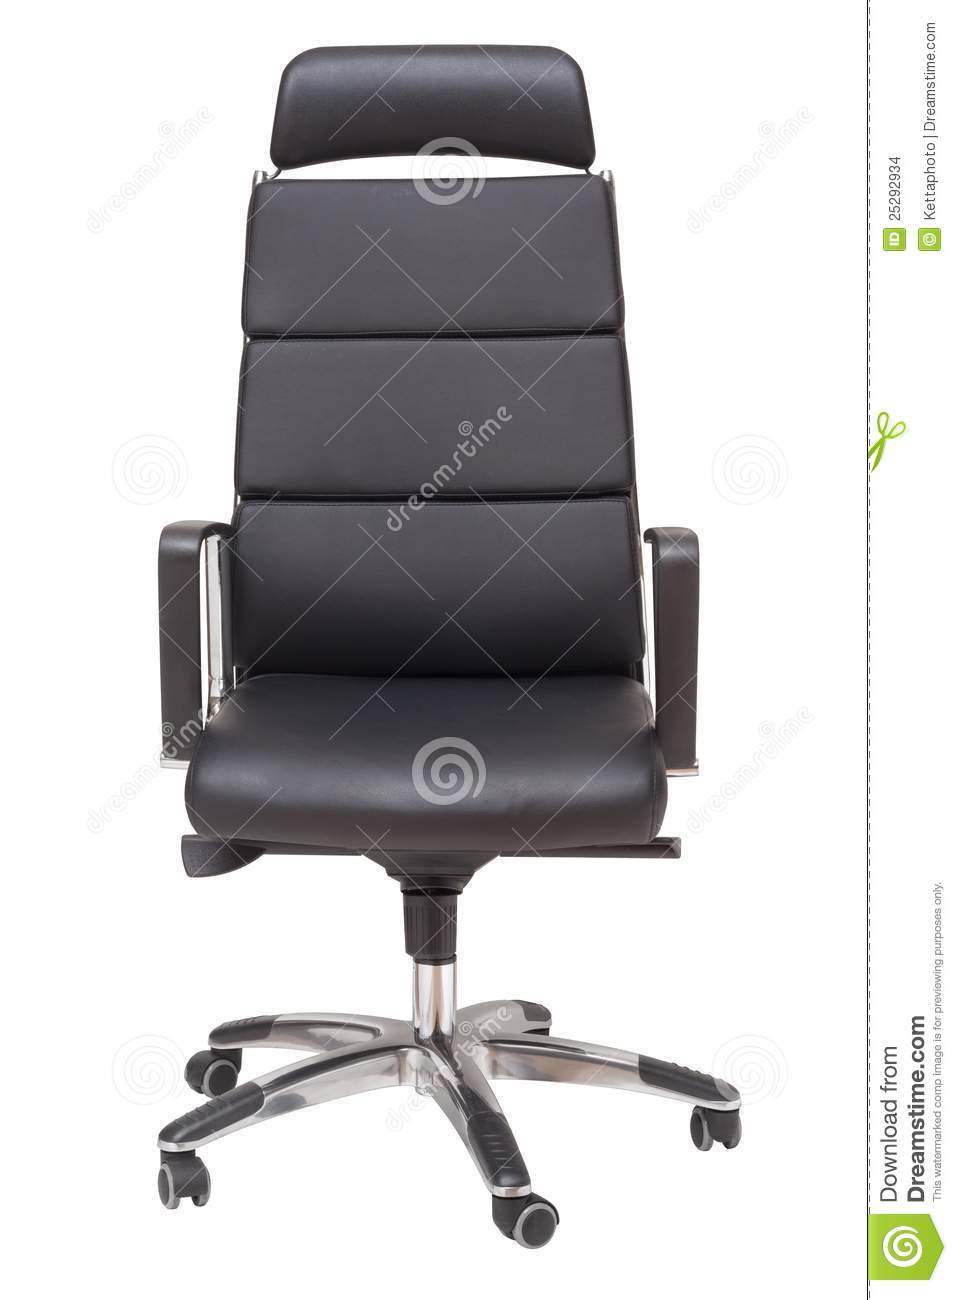 Commander Chair Stock Images - Image: 25292934